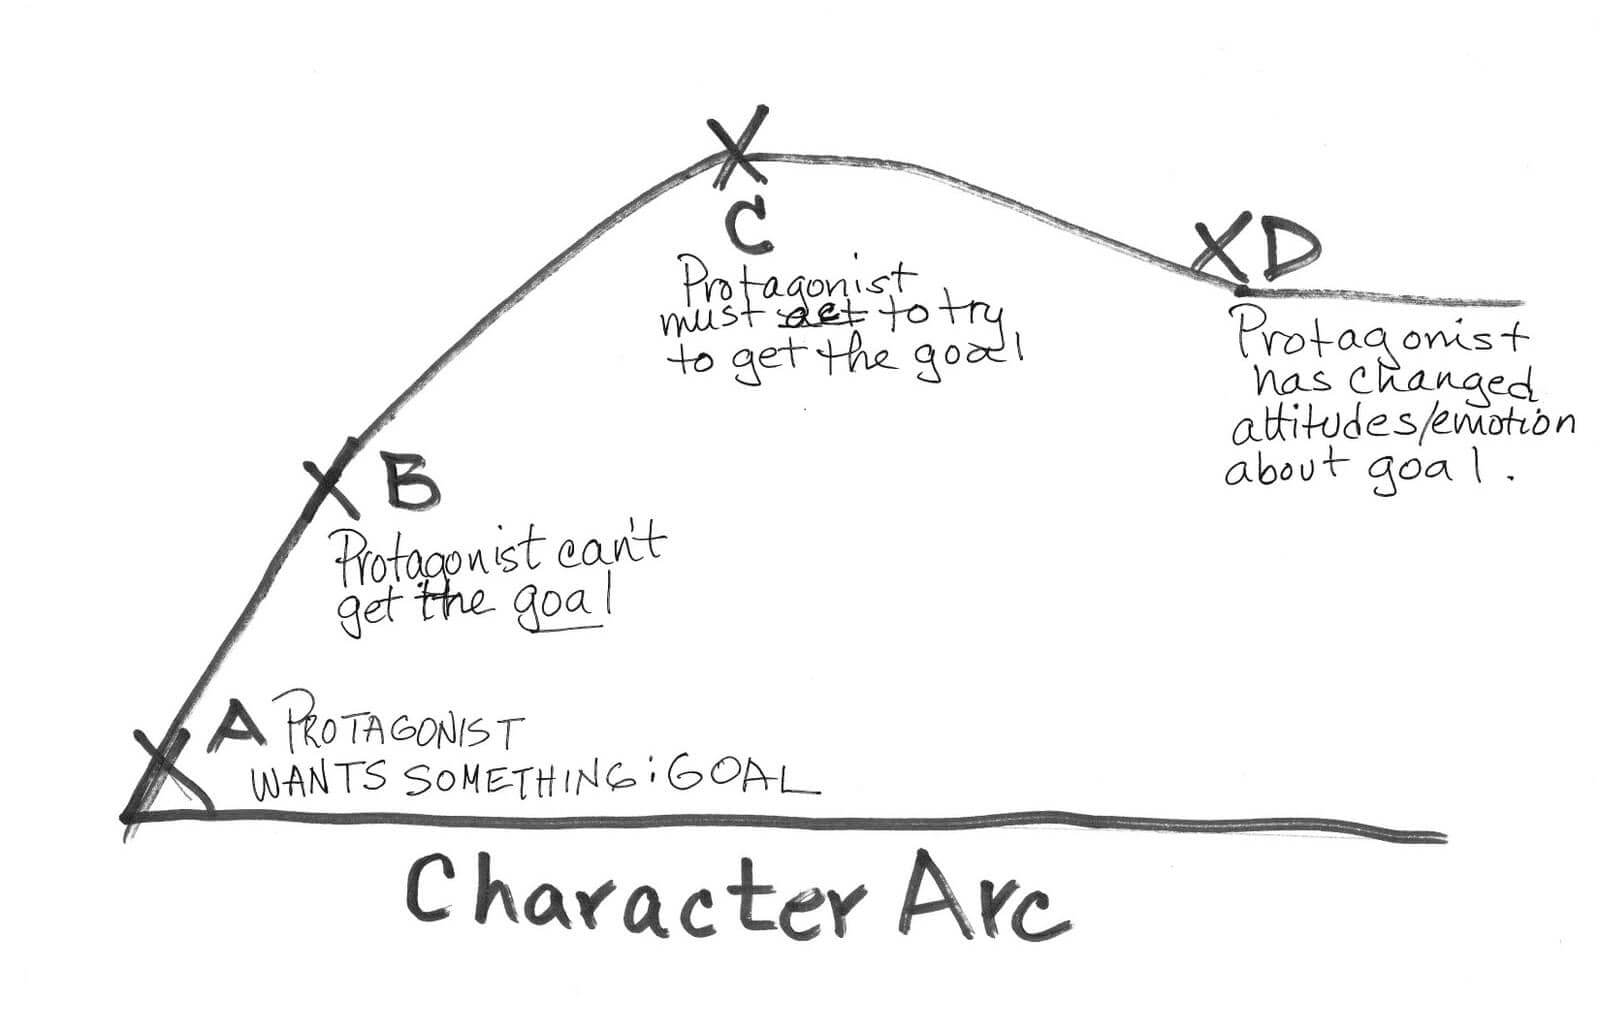 Character Development - The Character Arc